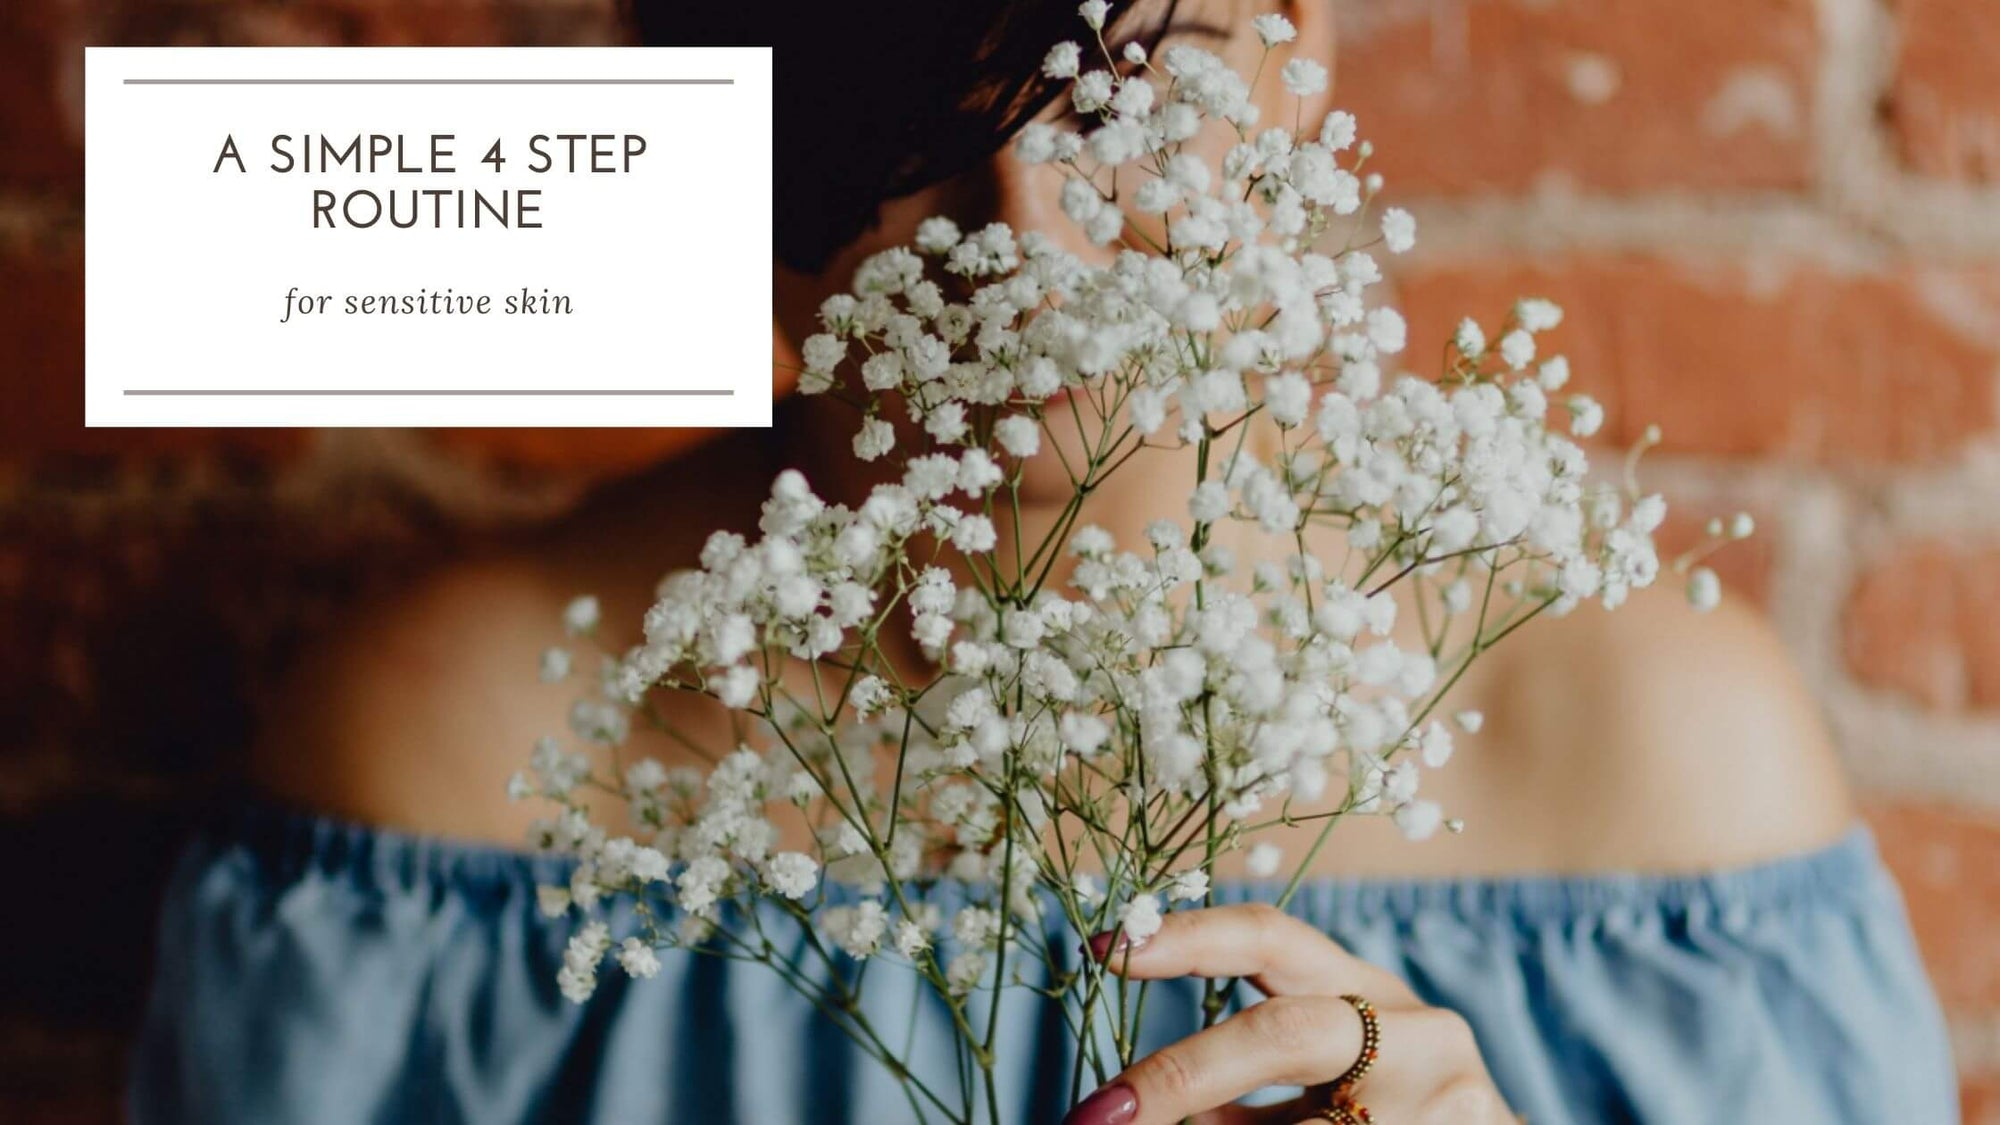 The 4 Step Skin Care Routine For Sensitive Skin